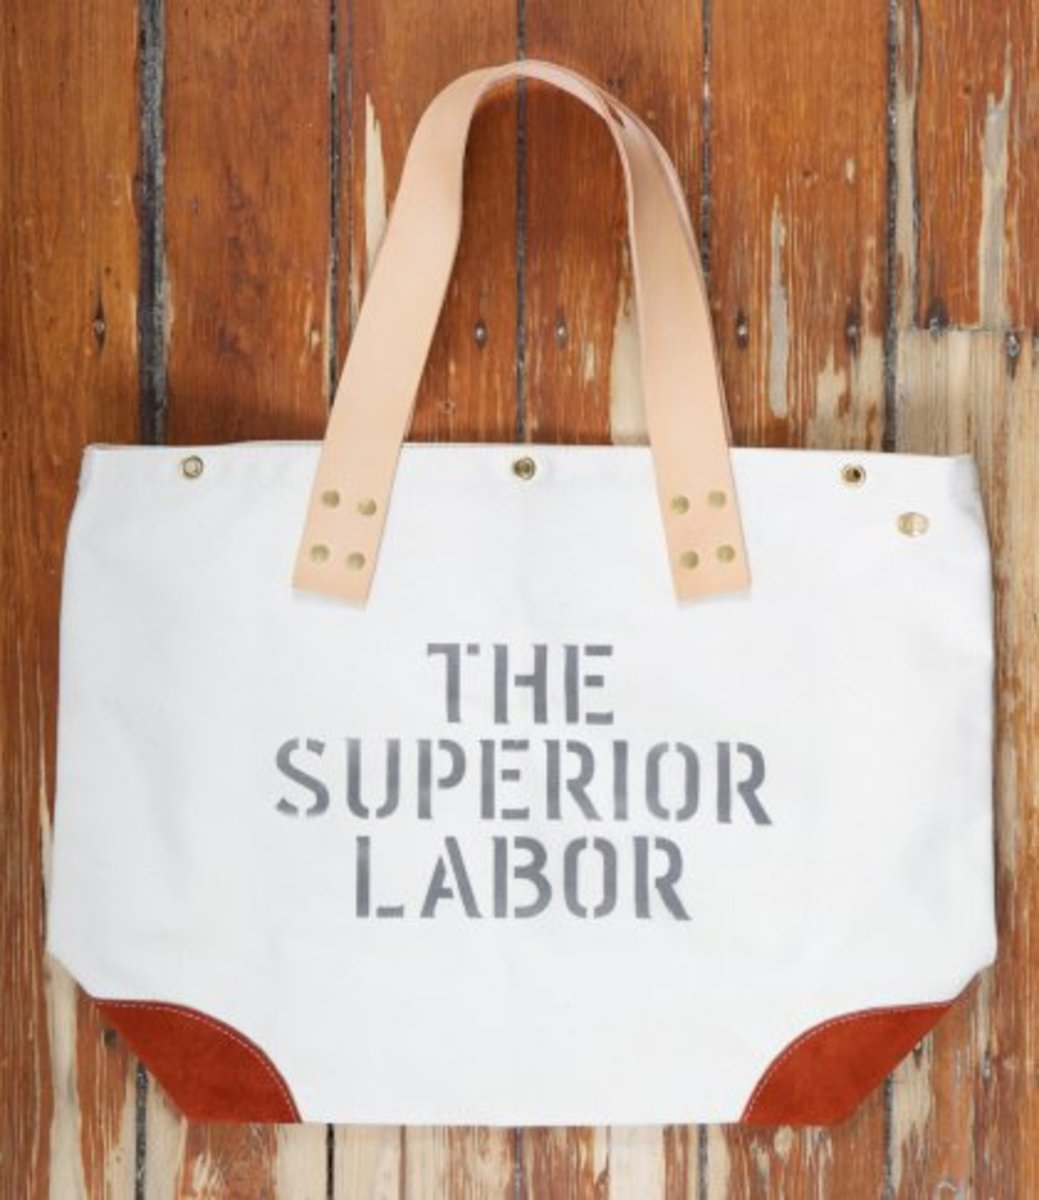 super-labor-market-bag-09